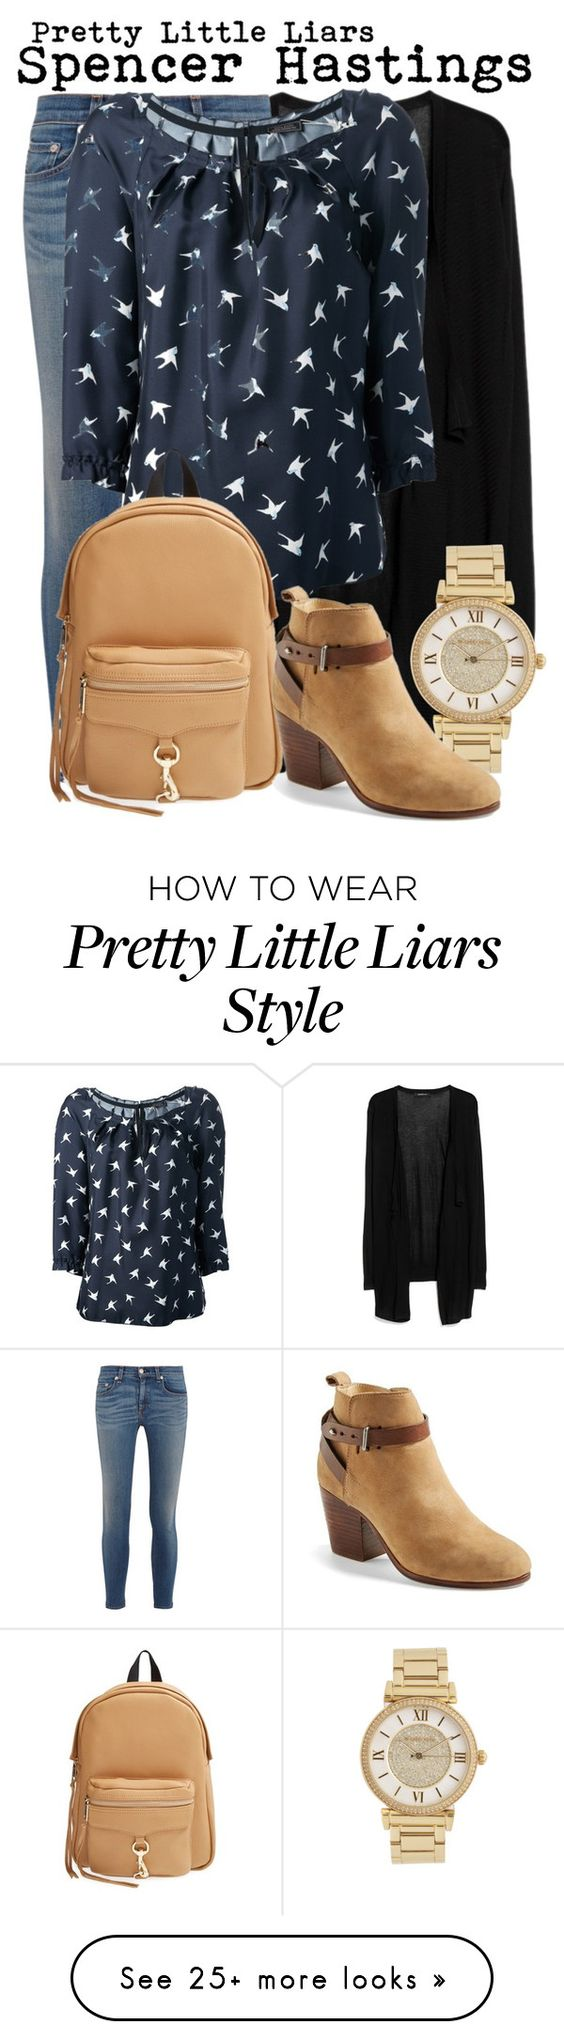 """Pretty Little Liars- Spencer Hastings"" by darcy-watson on Polyvore featuring moda, MANGO, rag & bone, Michael Kors, Nina Ricci y Rebecca Minkoff"